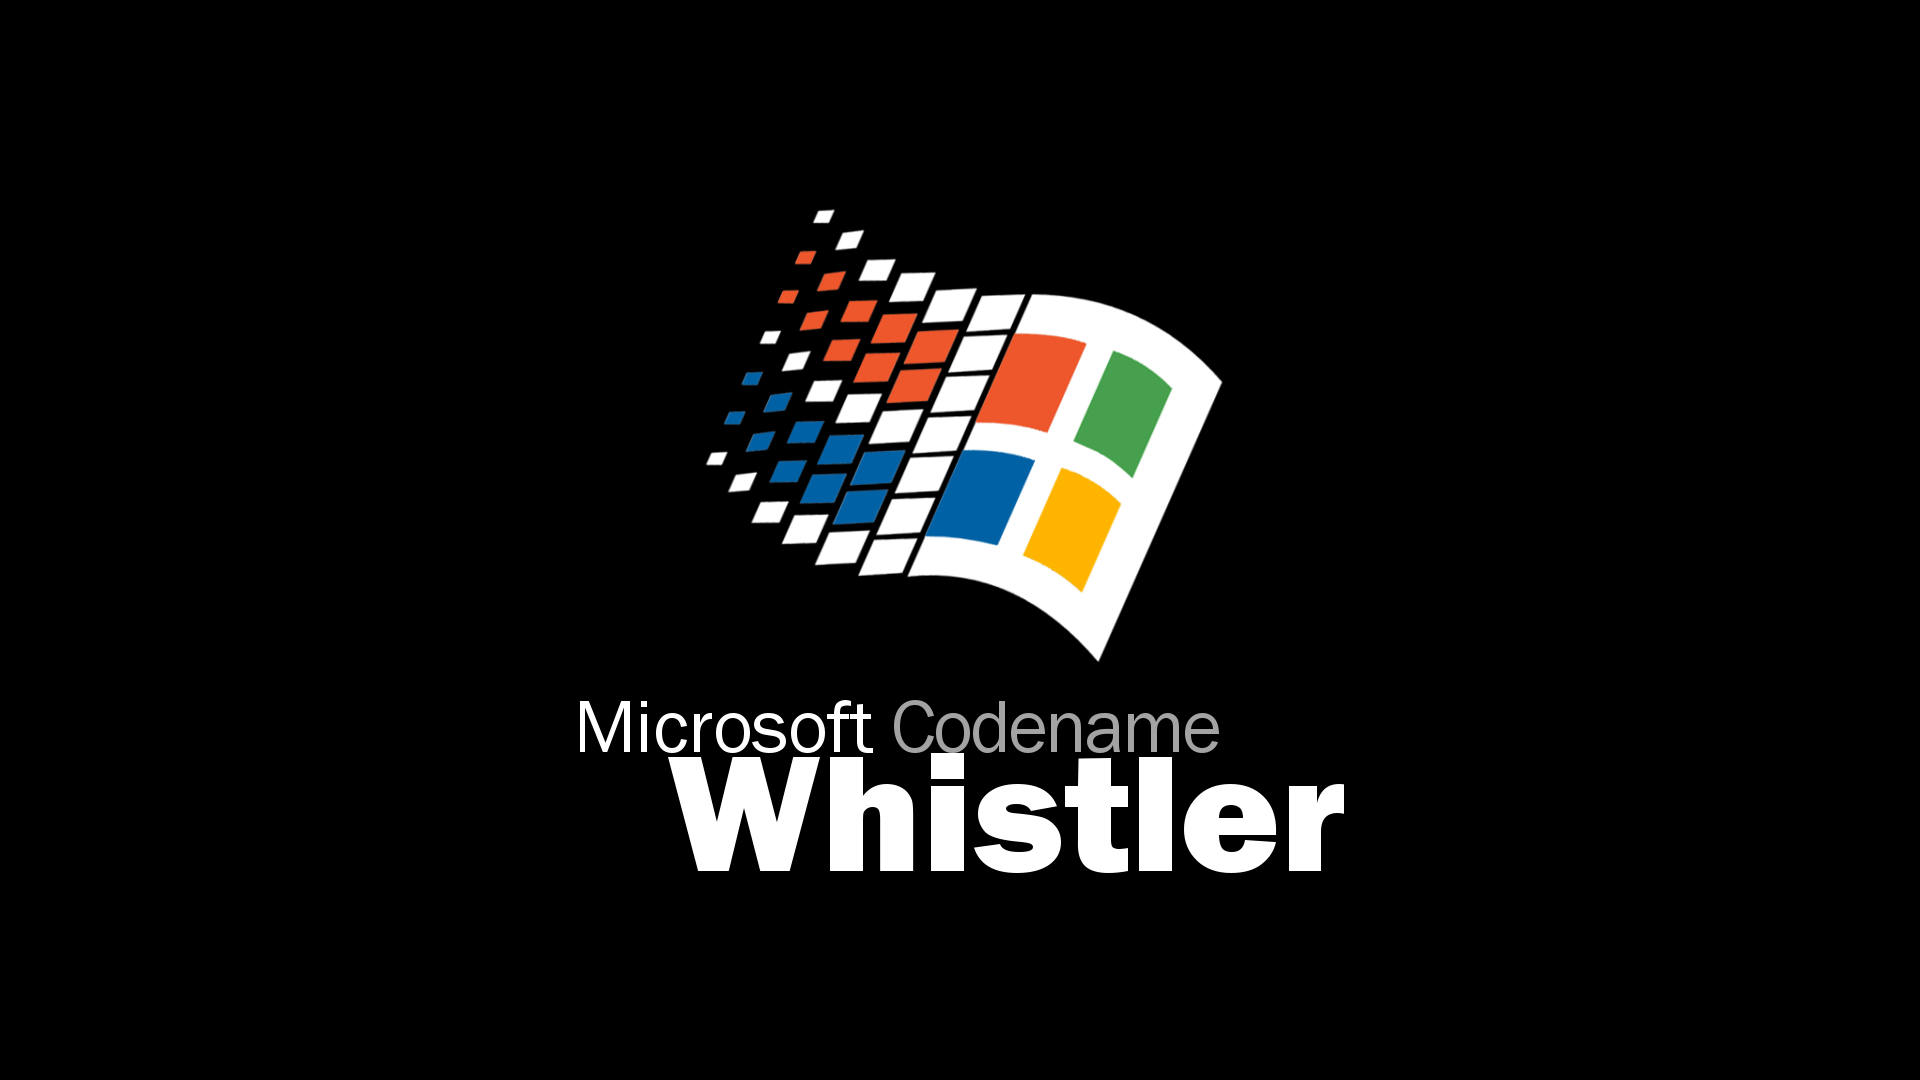 Hd Wallpapers For Windows 7 Download Microsoft Codename Windows Whistler Wallpaper By